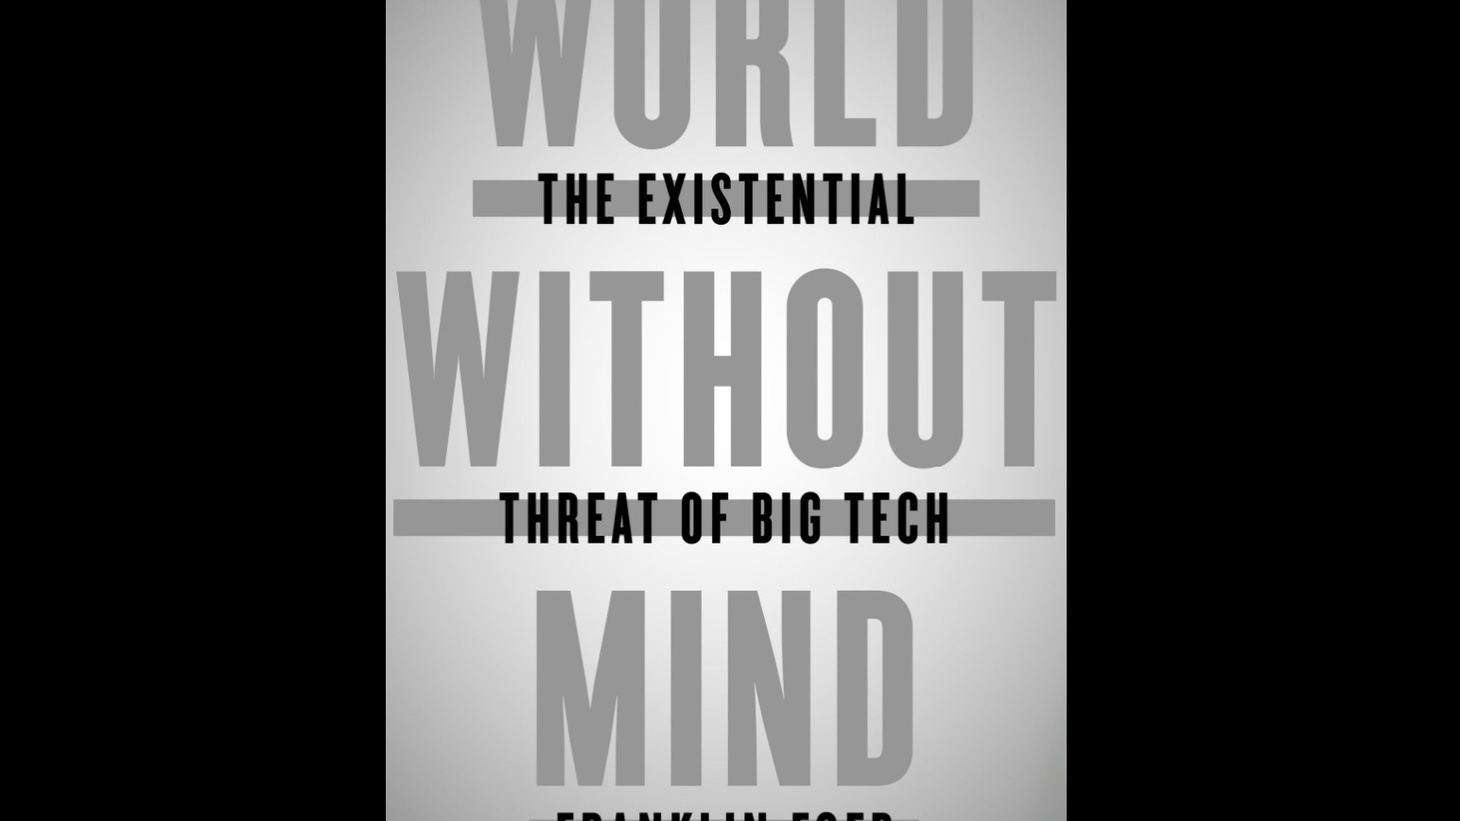 In  World without Mind: The Existential Threat of Big Tech , Franklin Foer makes the case that for far too long we've marveled at the products of Silicon Valley without seeing the existential threat they pose as monopolies -- because they are not like other monopolies.